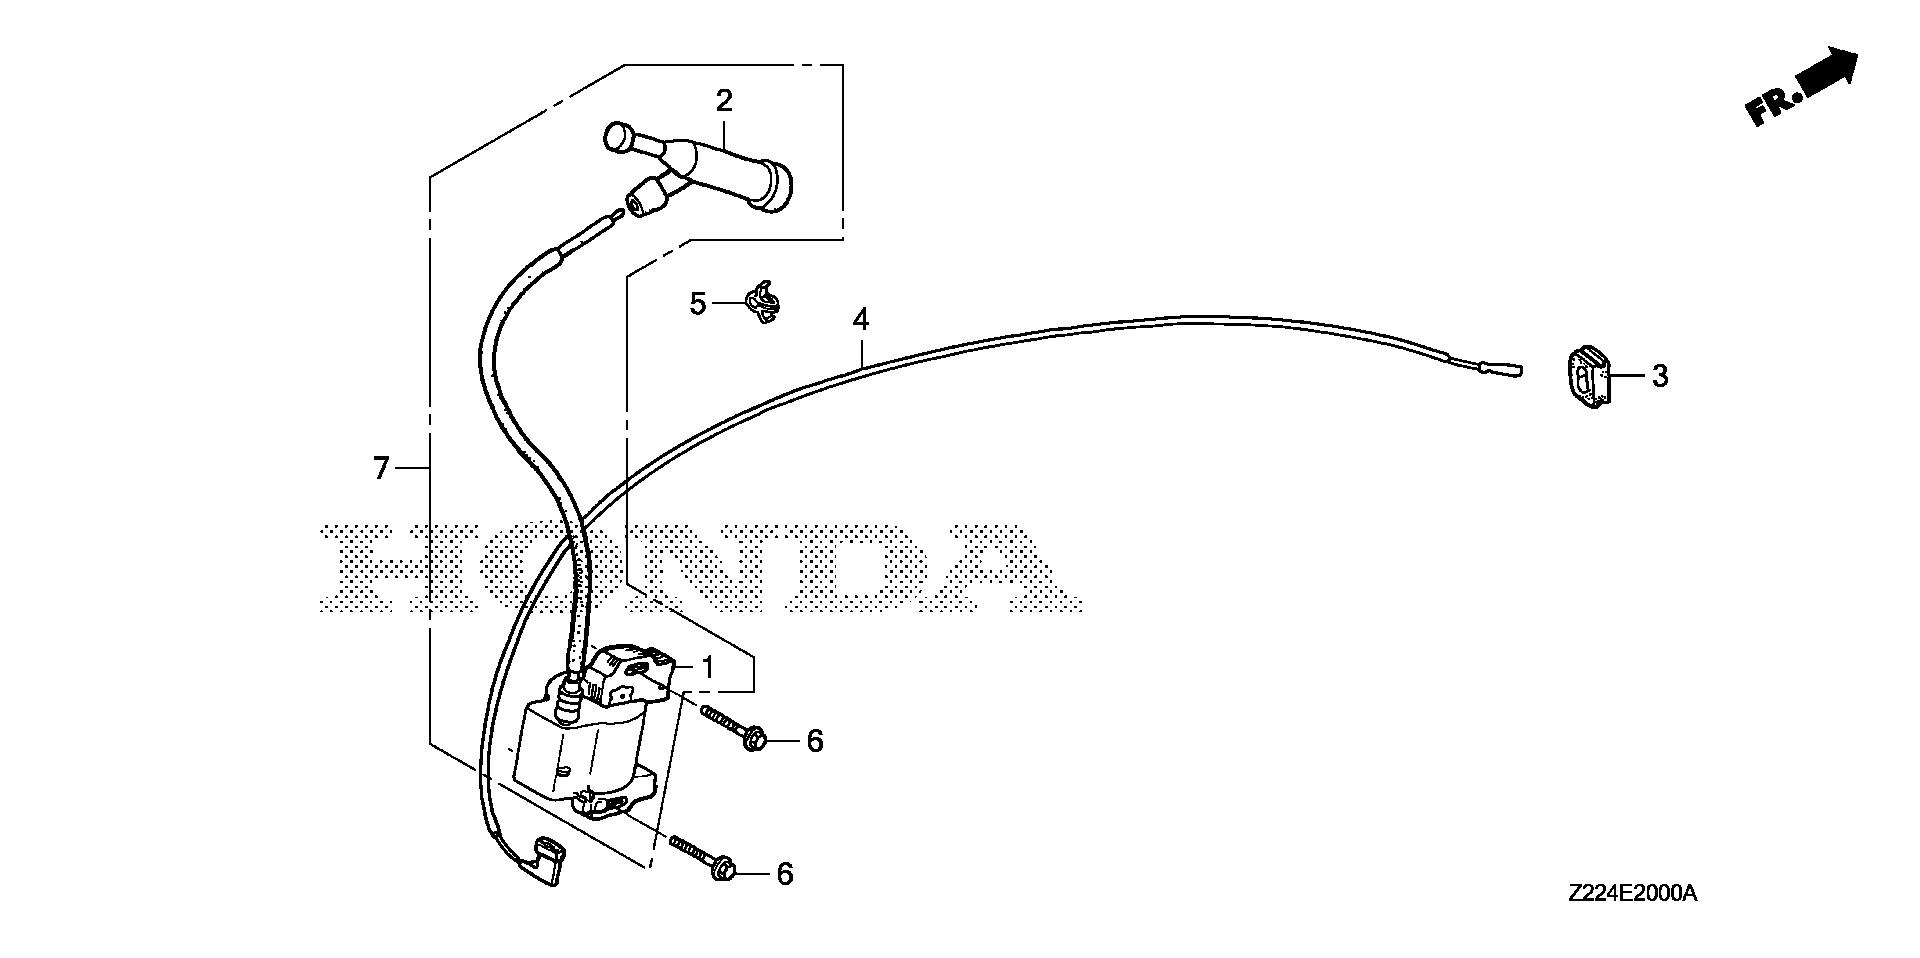 IGNITION COIL (1)